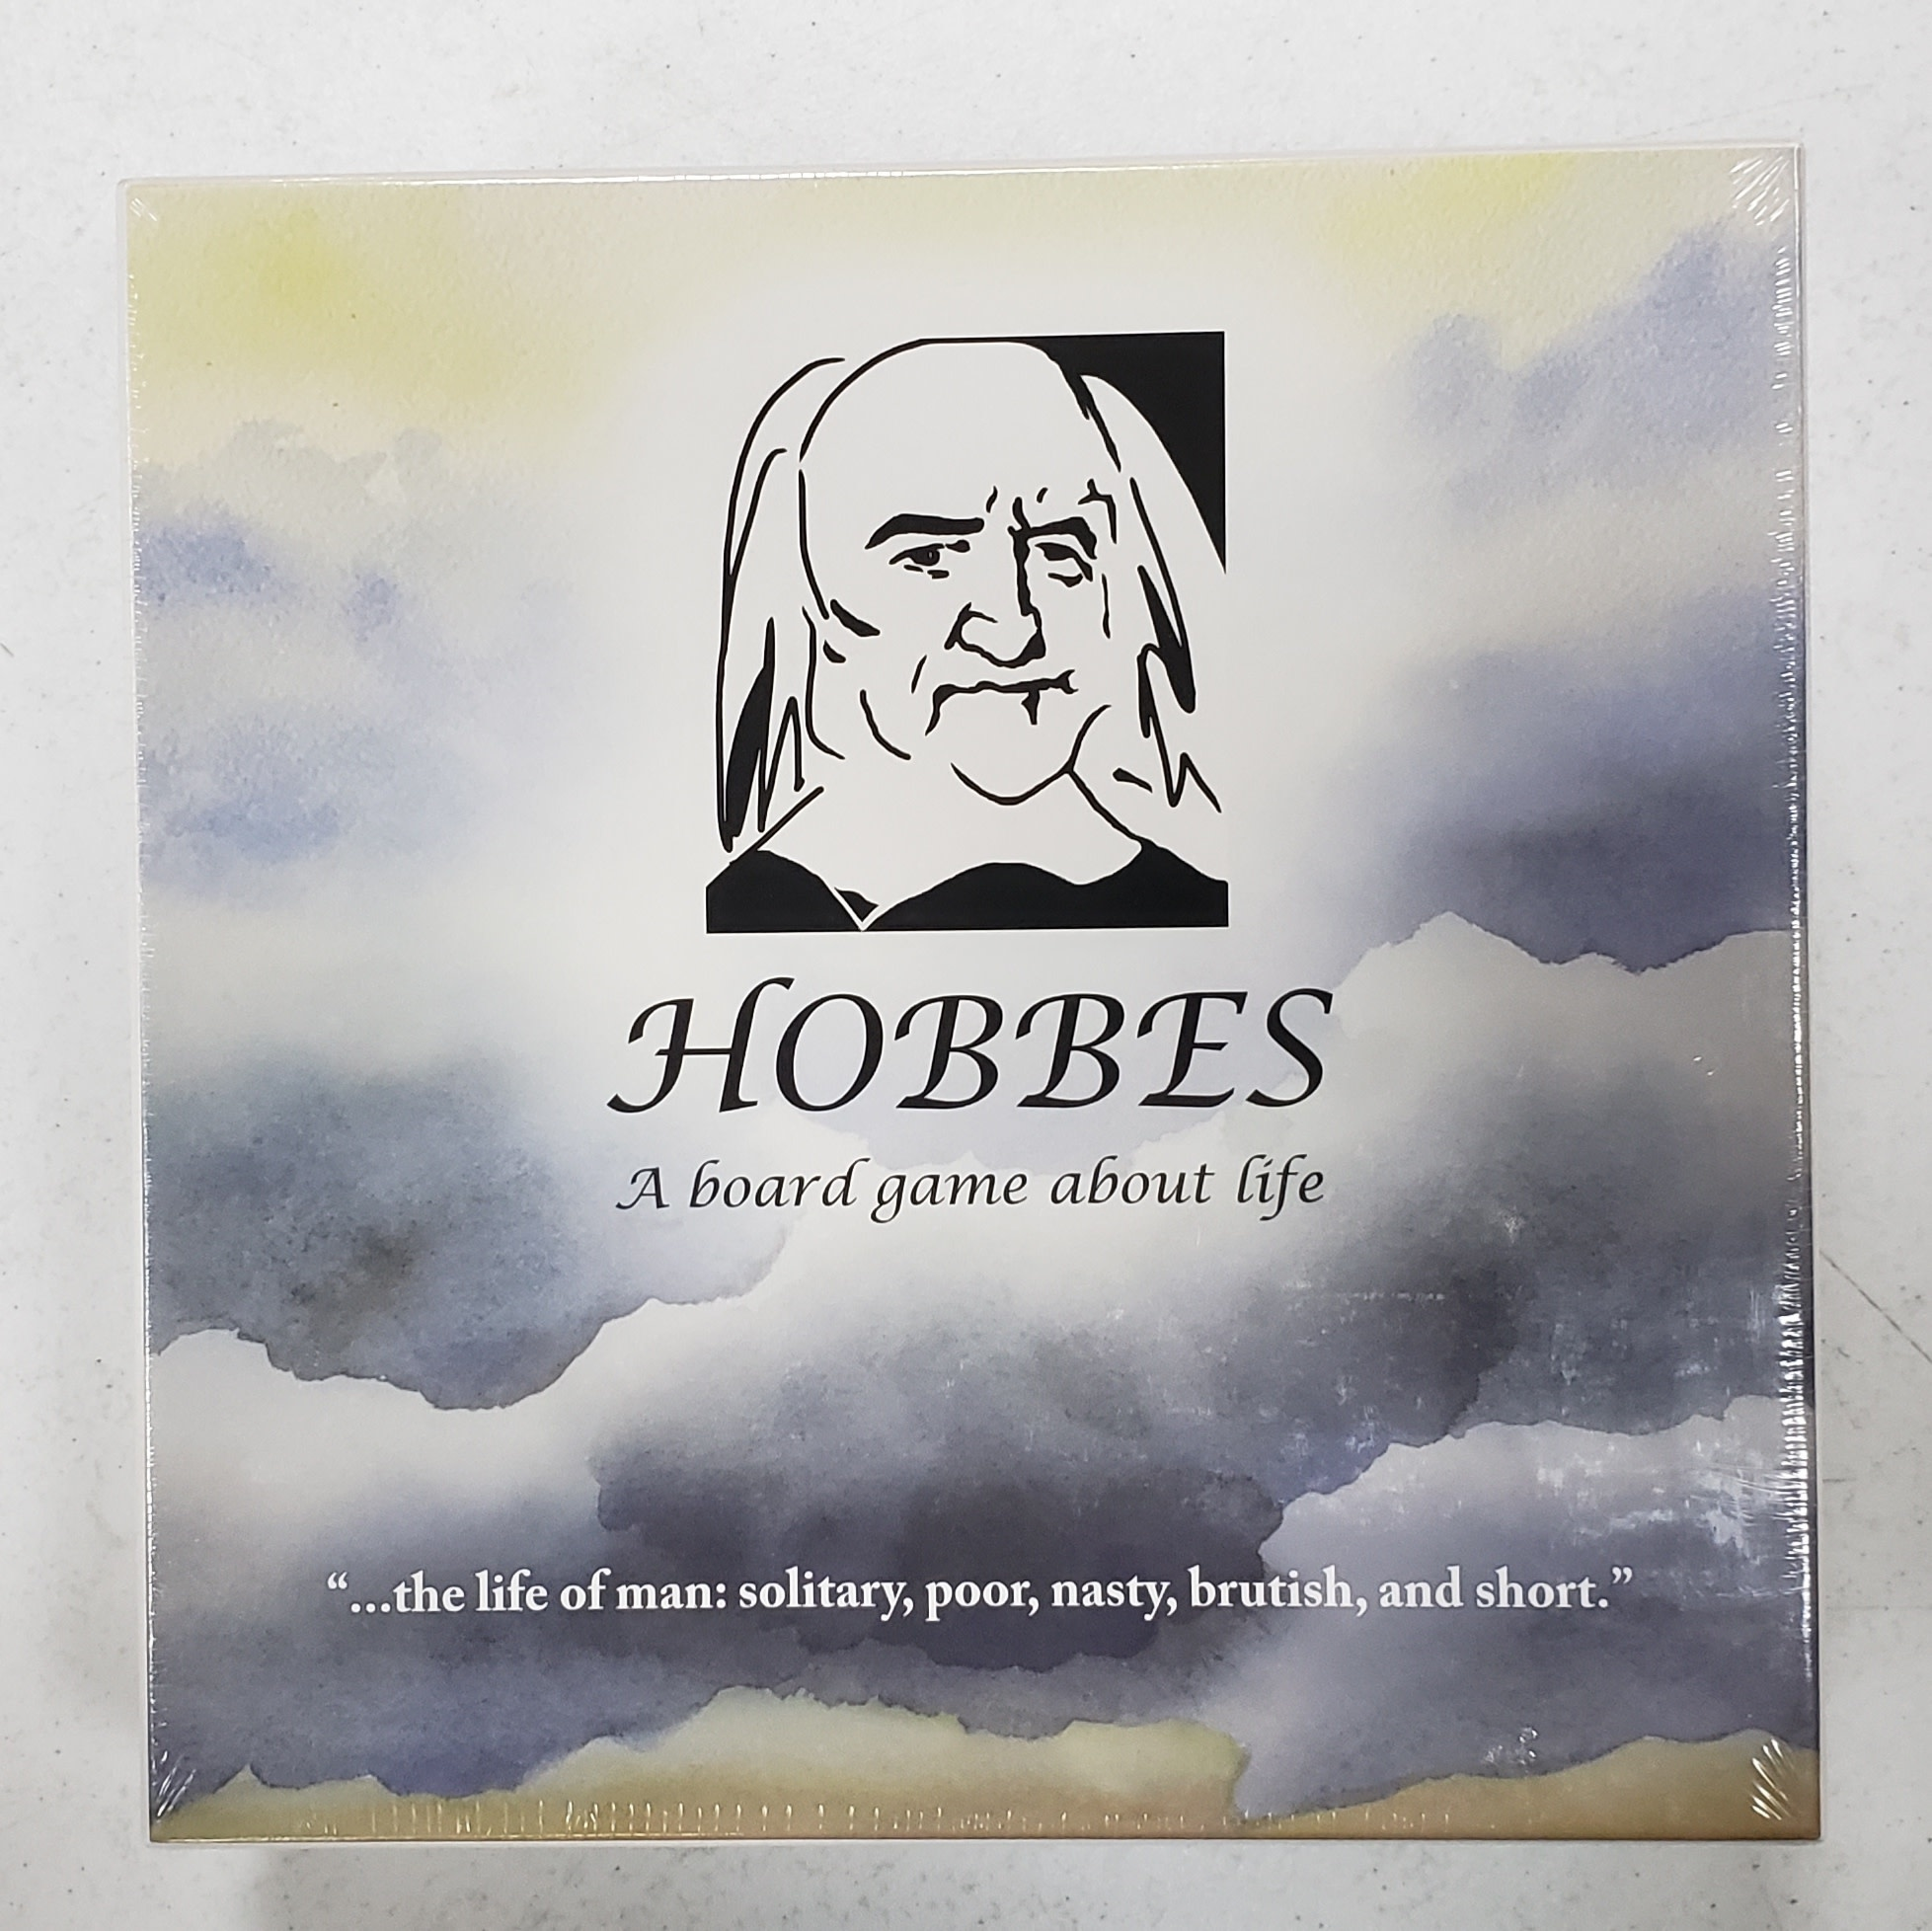 HOBBES: A BOARD GAME ABOUT LIFE